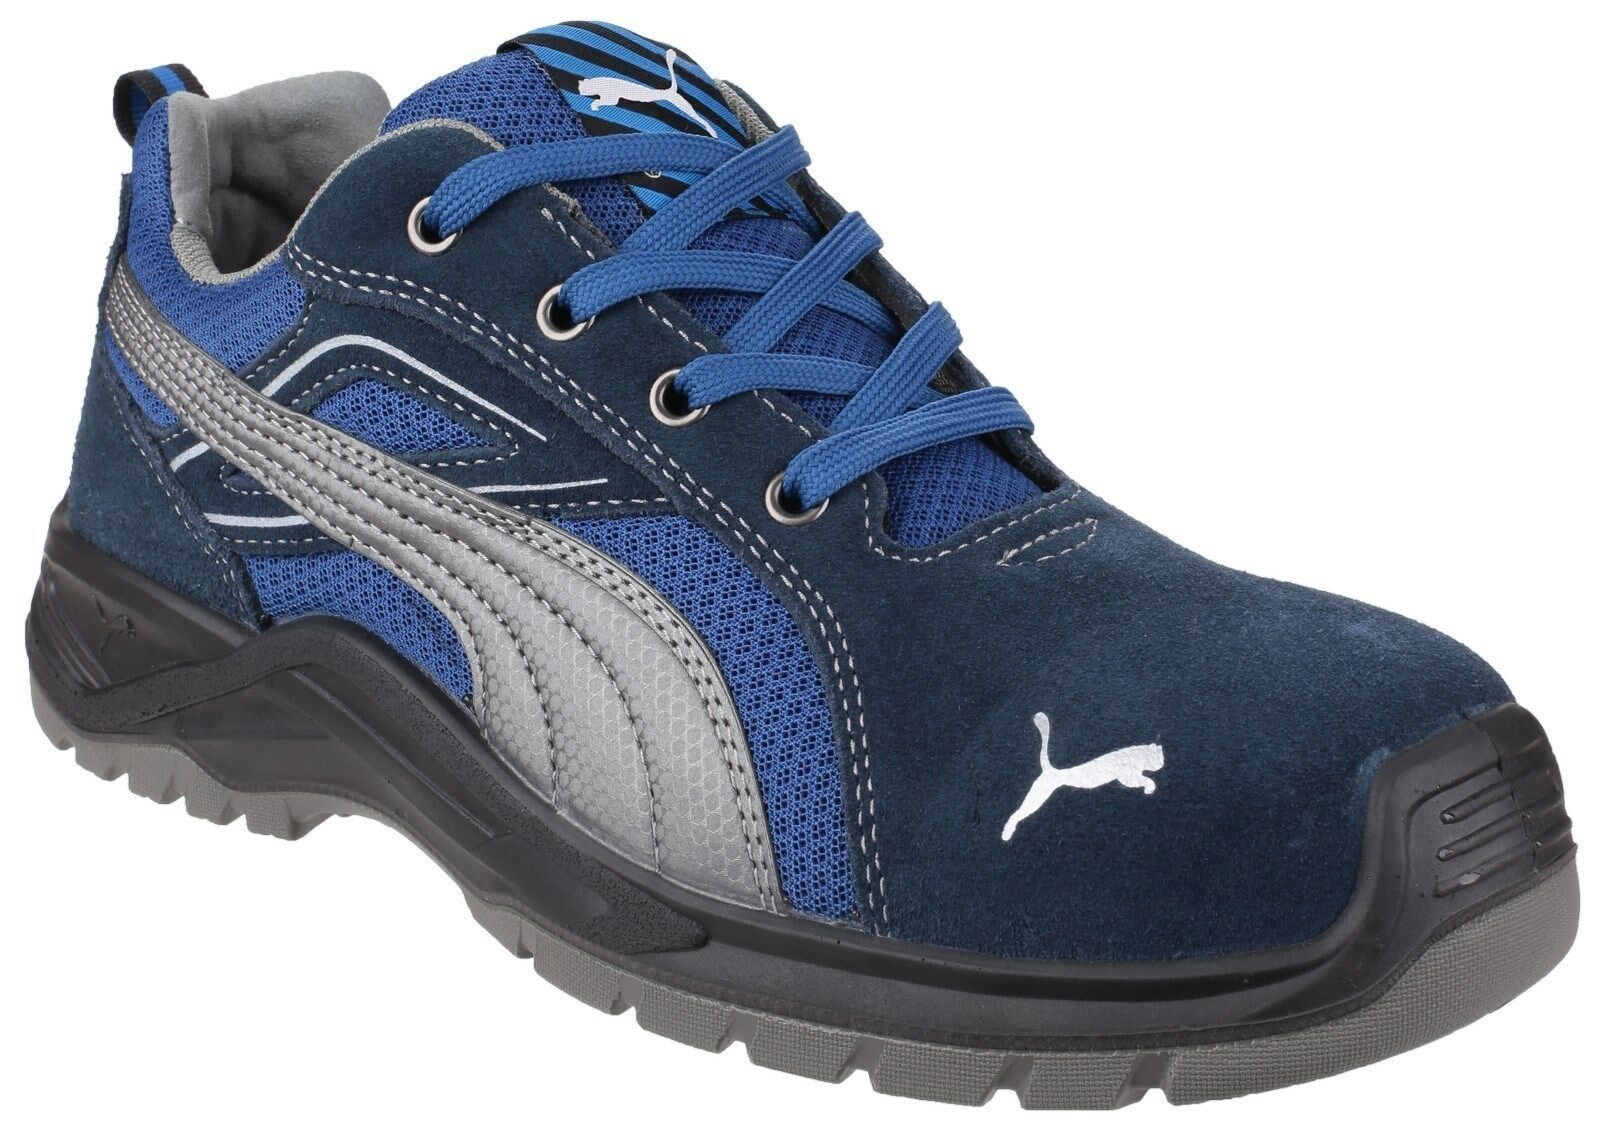 Puma Omni Sky Low Safety Mens Industrial Industrial Mens Work Trainers Shoes UK6.5-12 dc6299